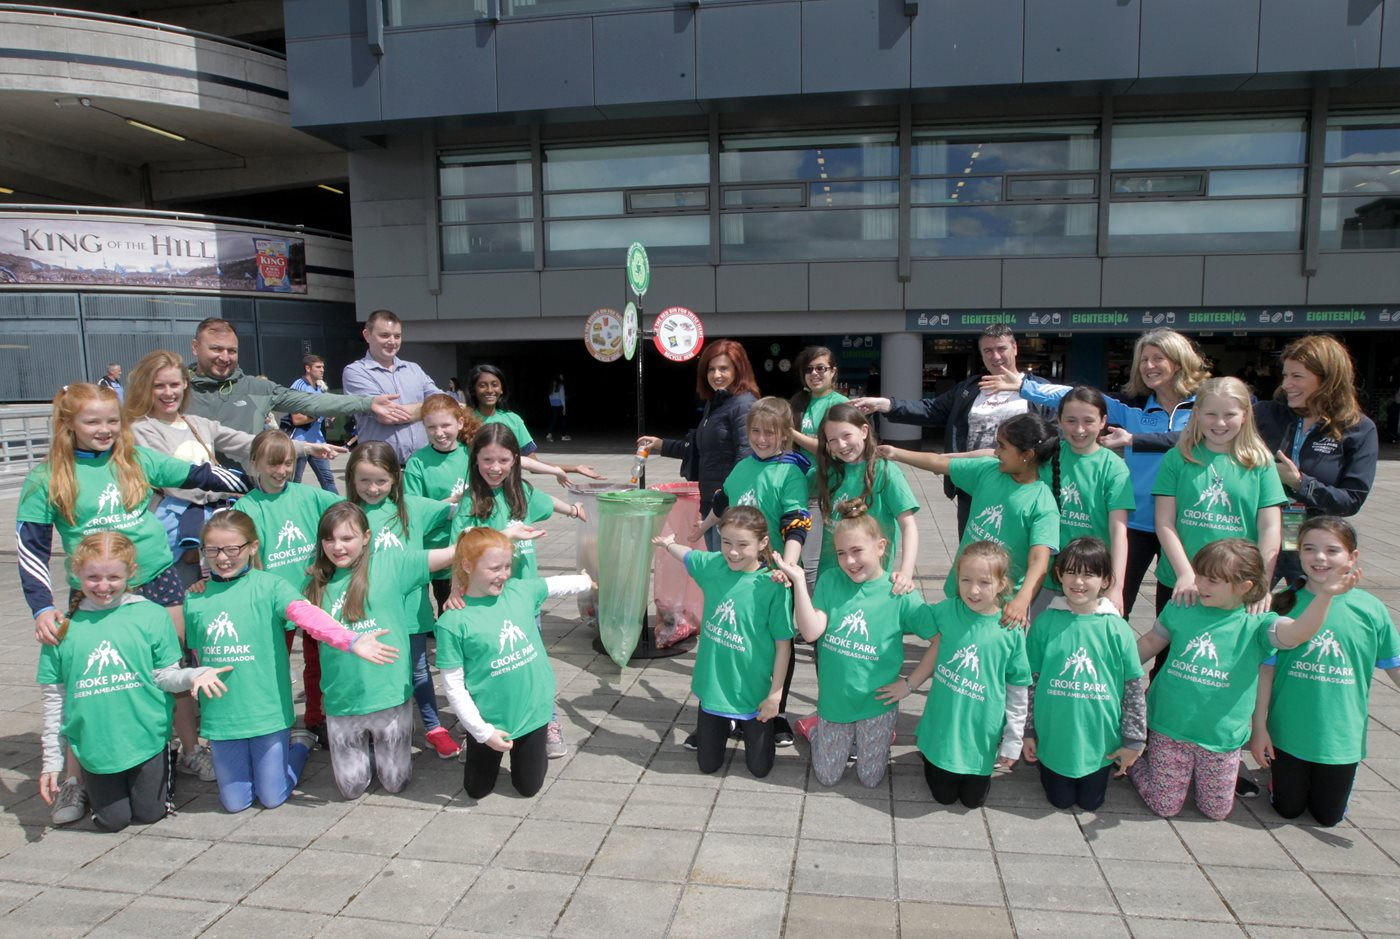 'Get on board' with Croke Park's Sustainability Day!